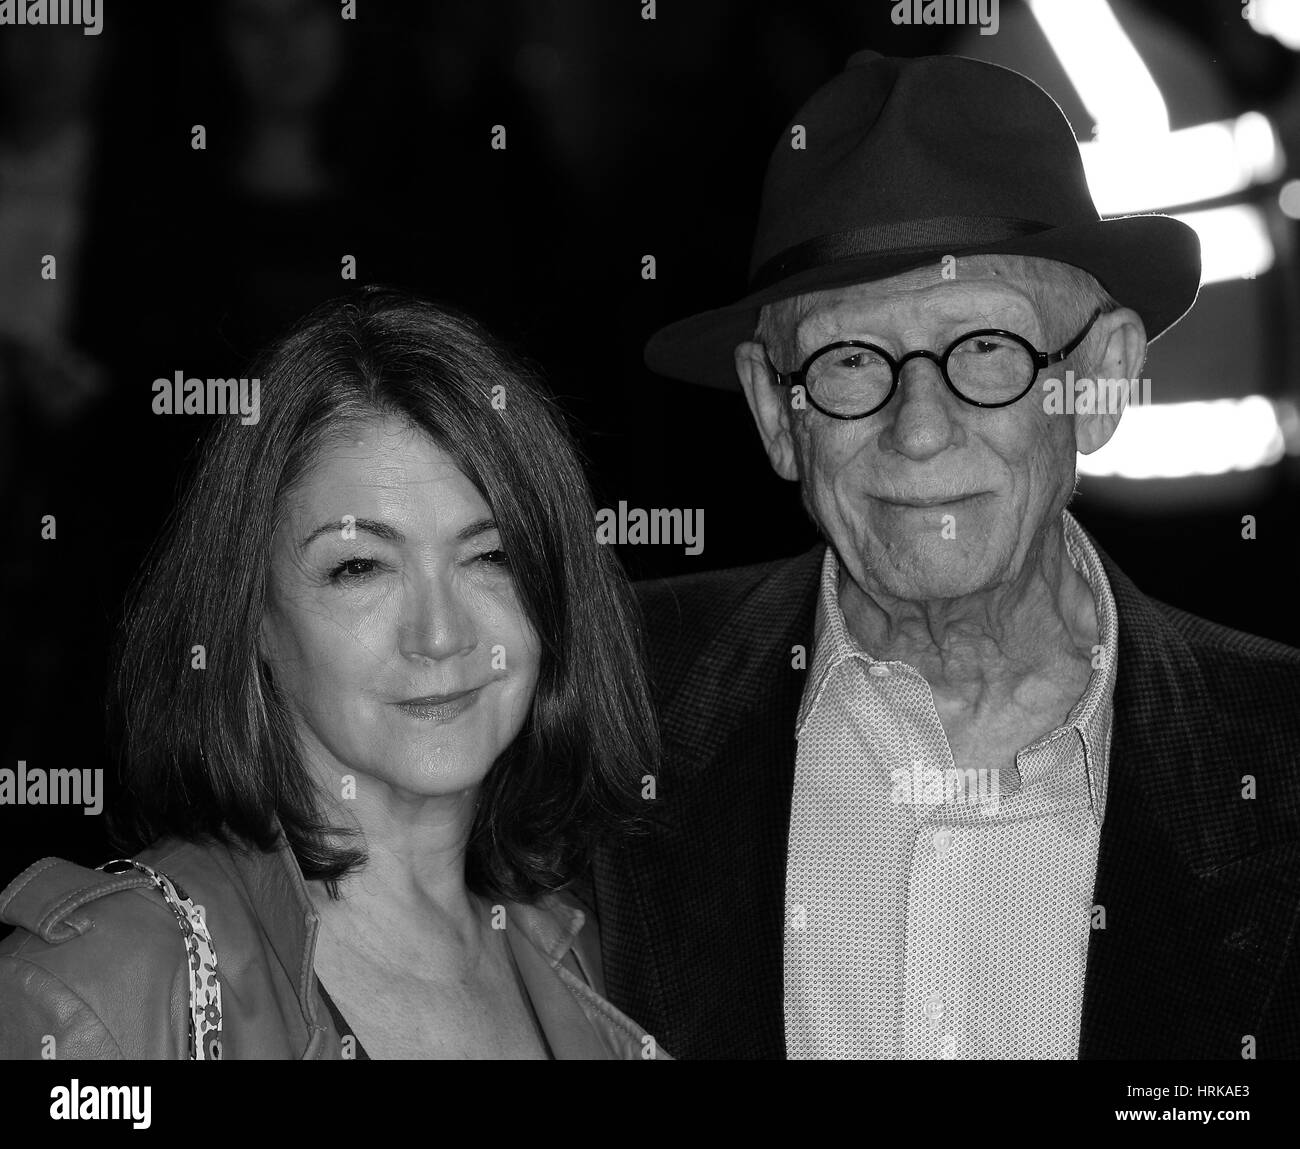 London, UK, 7th Oct 2015: John Hurt ( Image digitally altered to monochrome ) attends the Suffragette film premiere - Stock Image